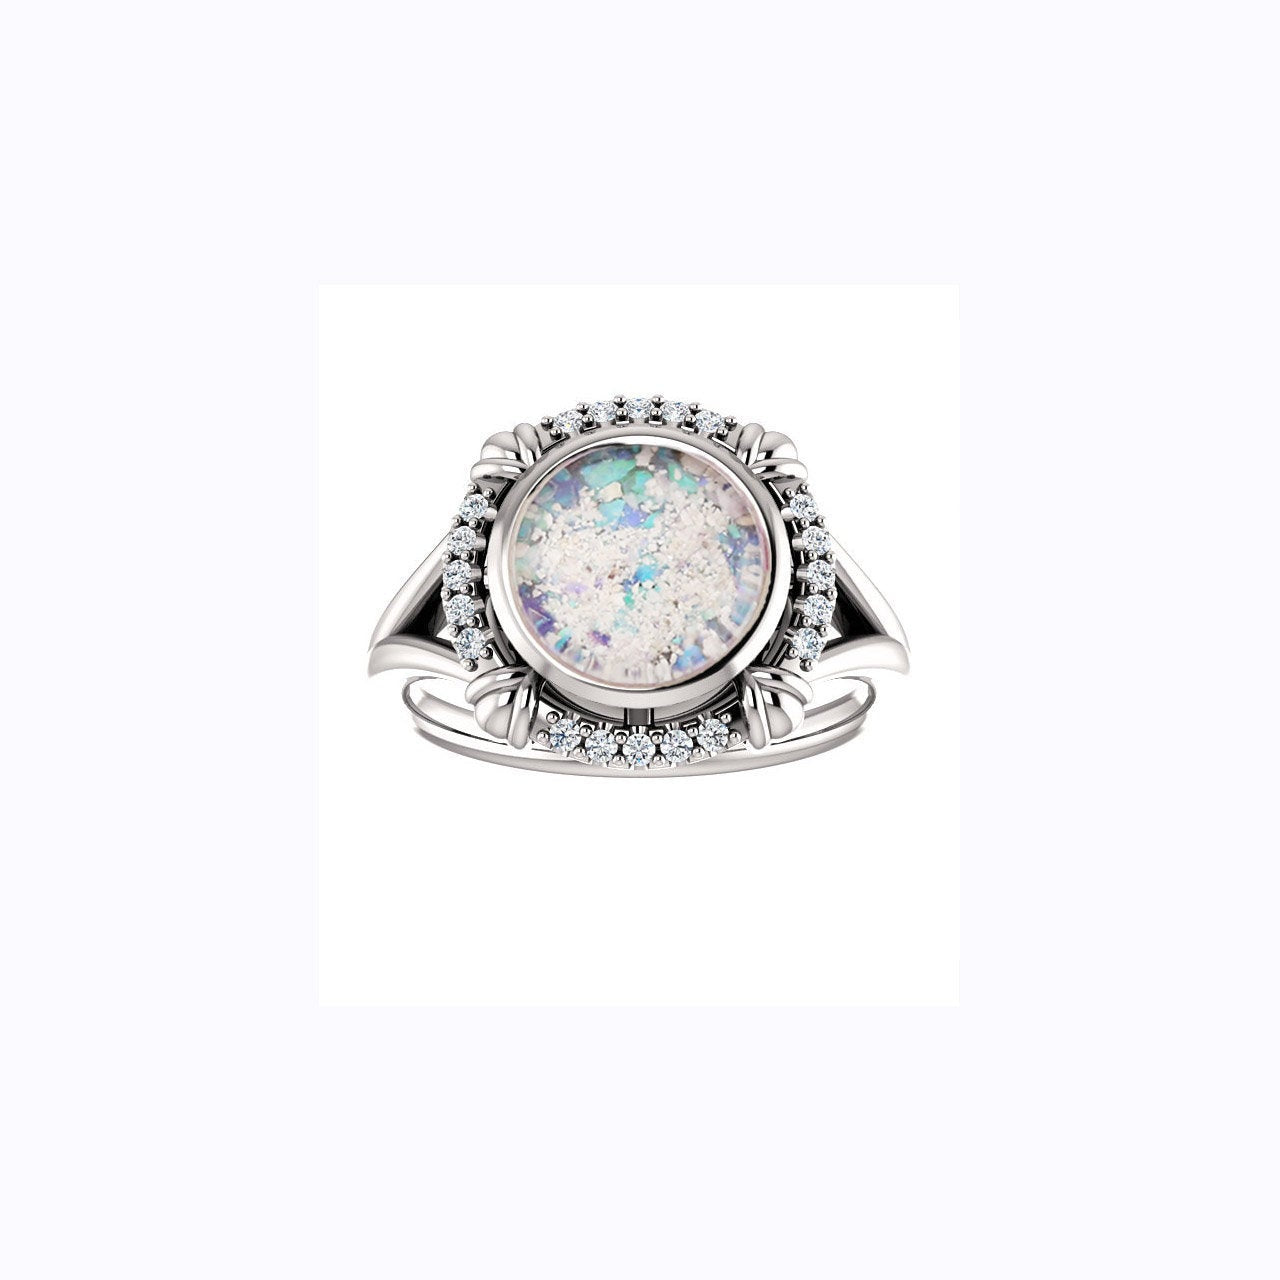 8mm Round Opal Cremation Ring - 10k White Gold and Diamond Ring - Cremation Jewelry - Ash Ring - Ash Jewelry - Urn Ring - Opal Ring